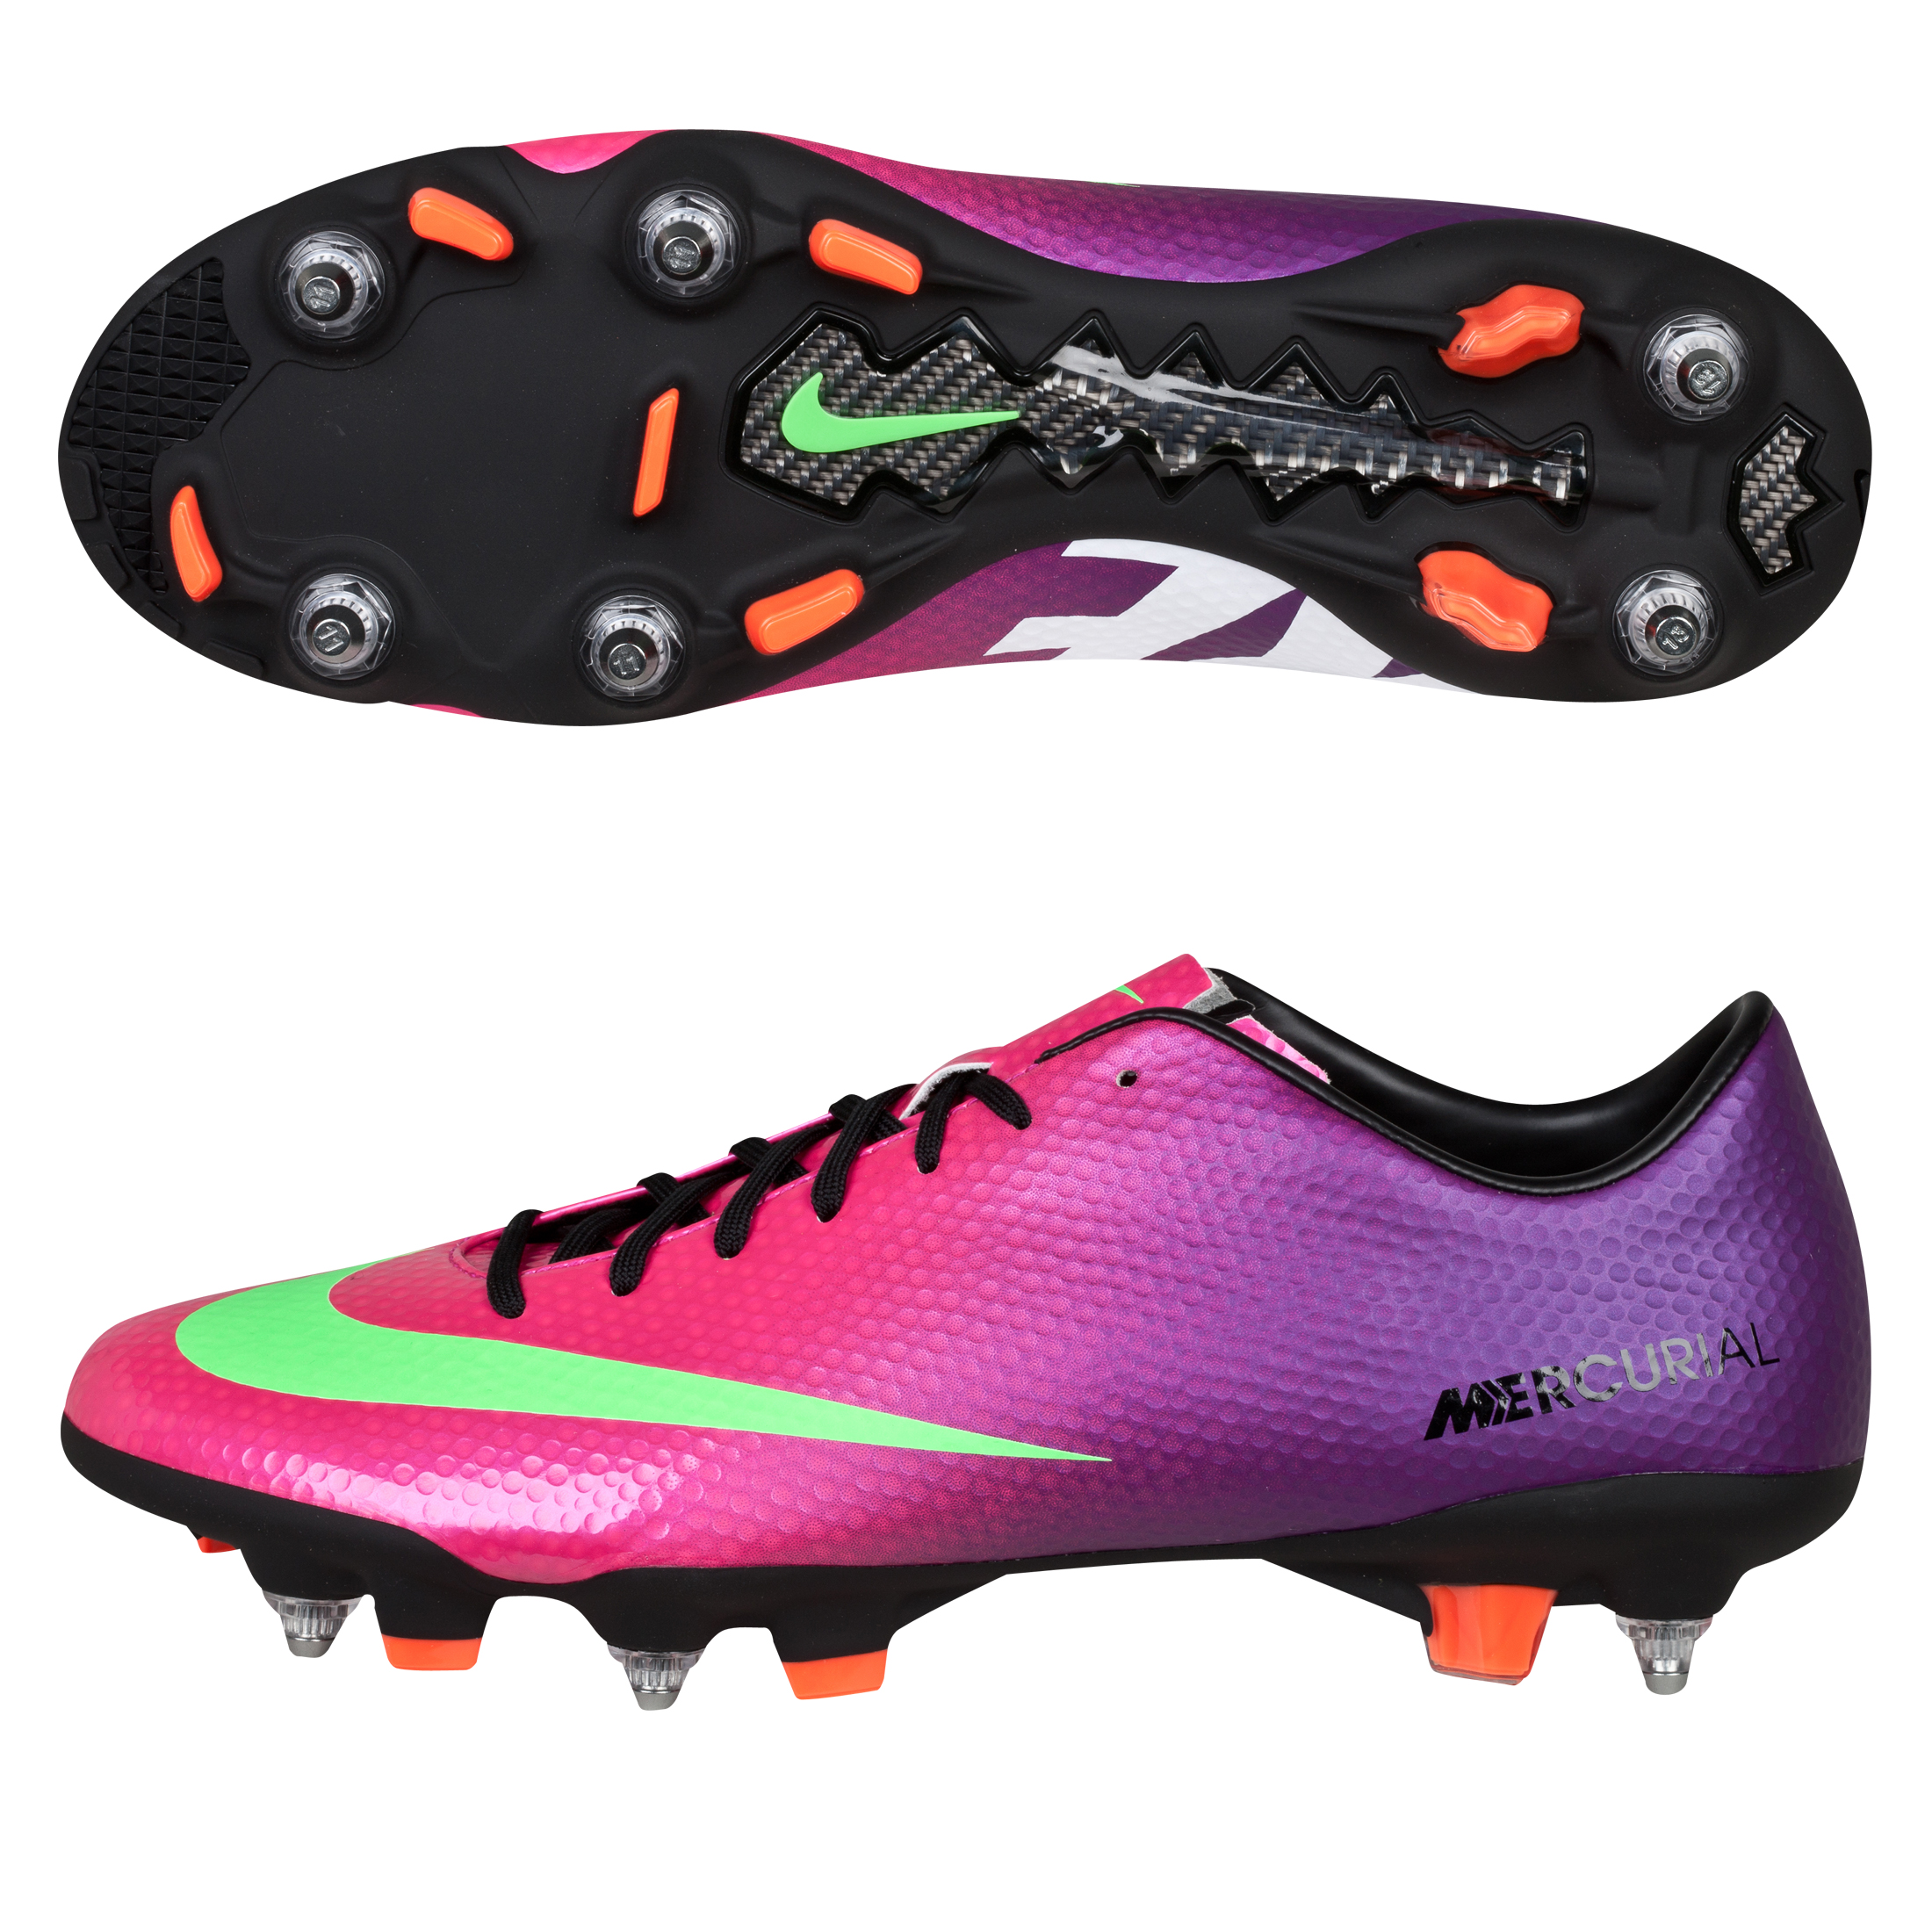 Nike Mercurial Veloce Soft Ground Pro Football Boots - Fireberry/Electric Green/Red Plum